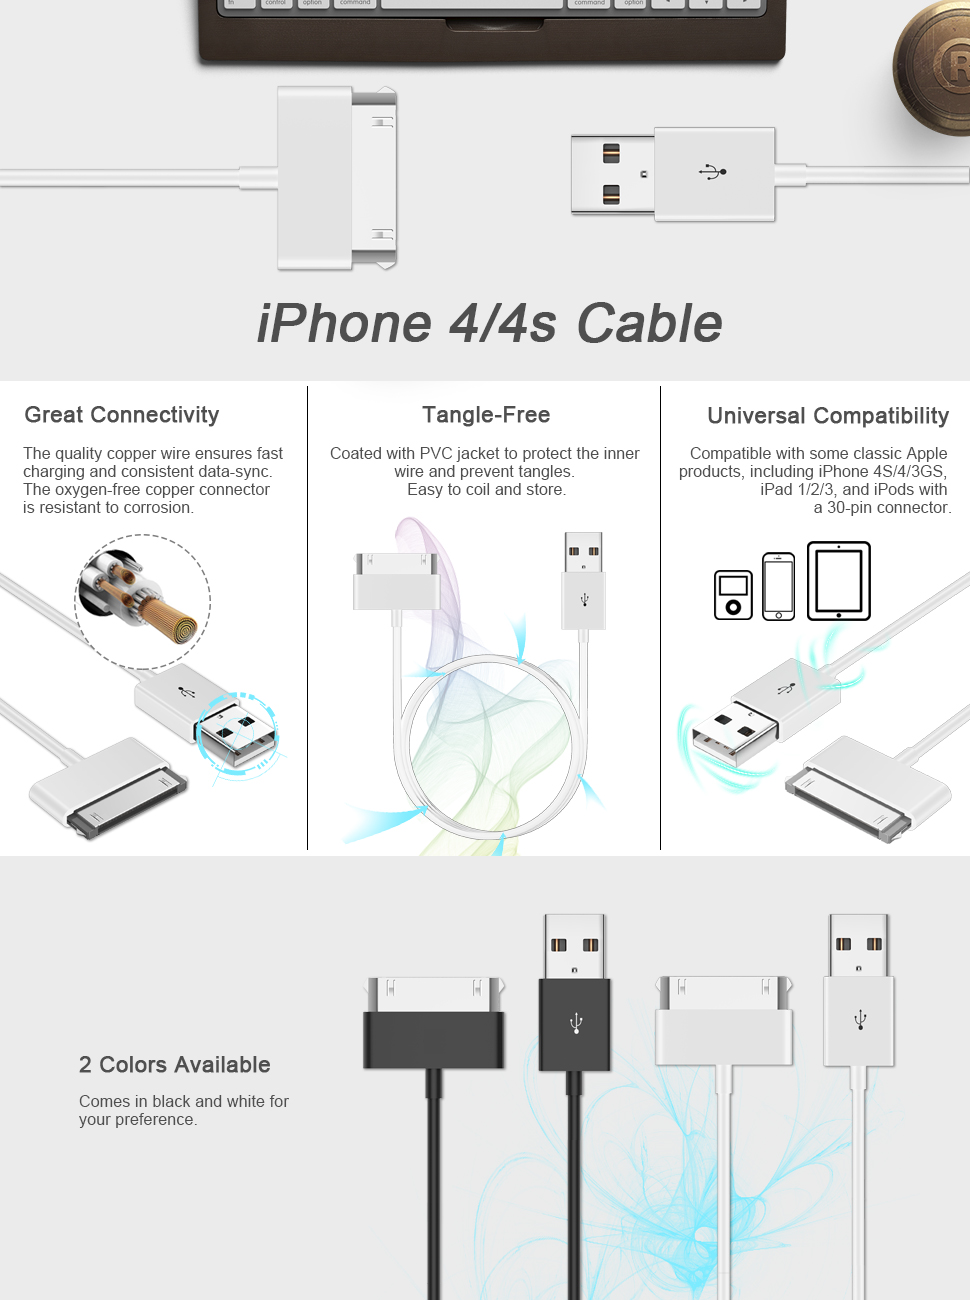 Jetech Usb Sync And Charging Cable For Iphone 4 4s Iphone 3g 3gs Ipad 1 2 3 Ipod 3 2 Feet White Amazon Ca Cell Phones Accessories